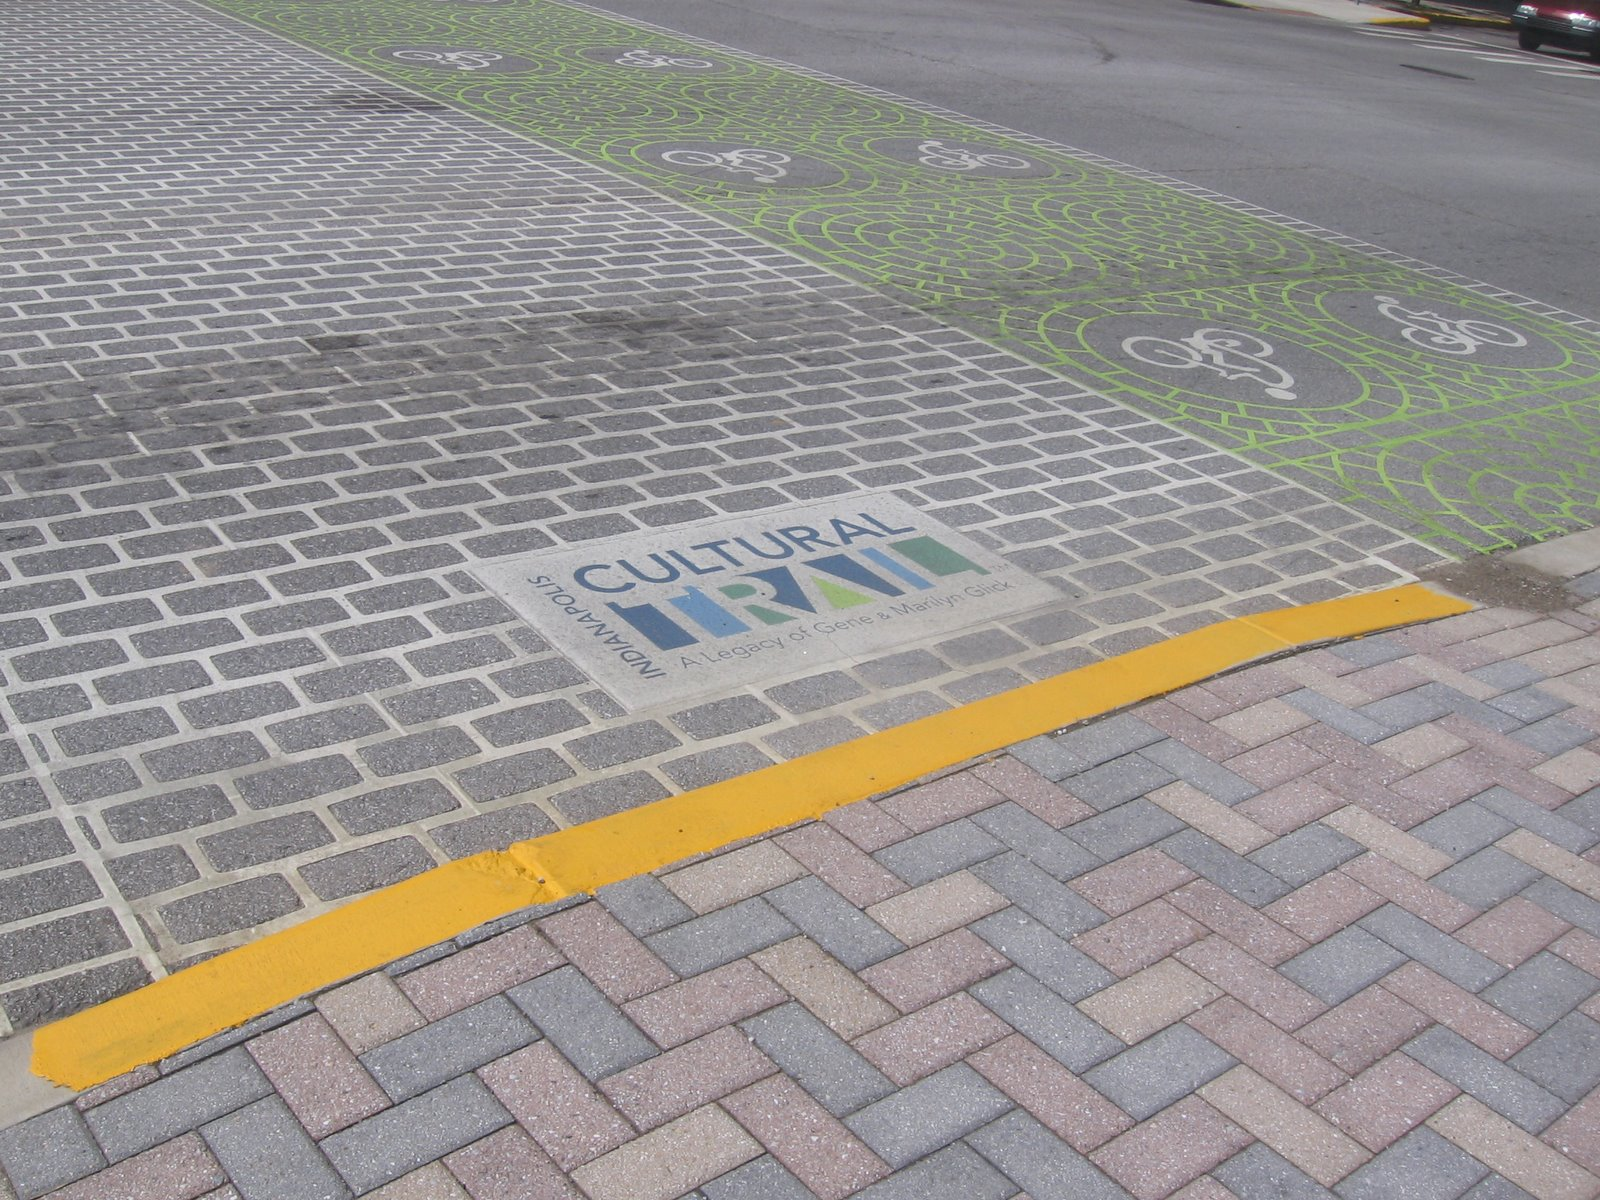 the iconography of Complete Streets in downtown Indianapolis